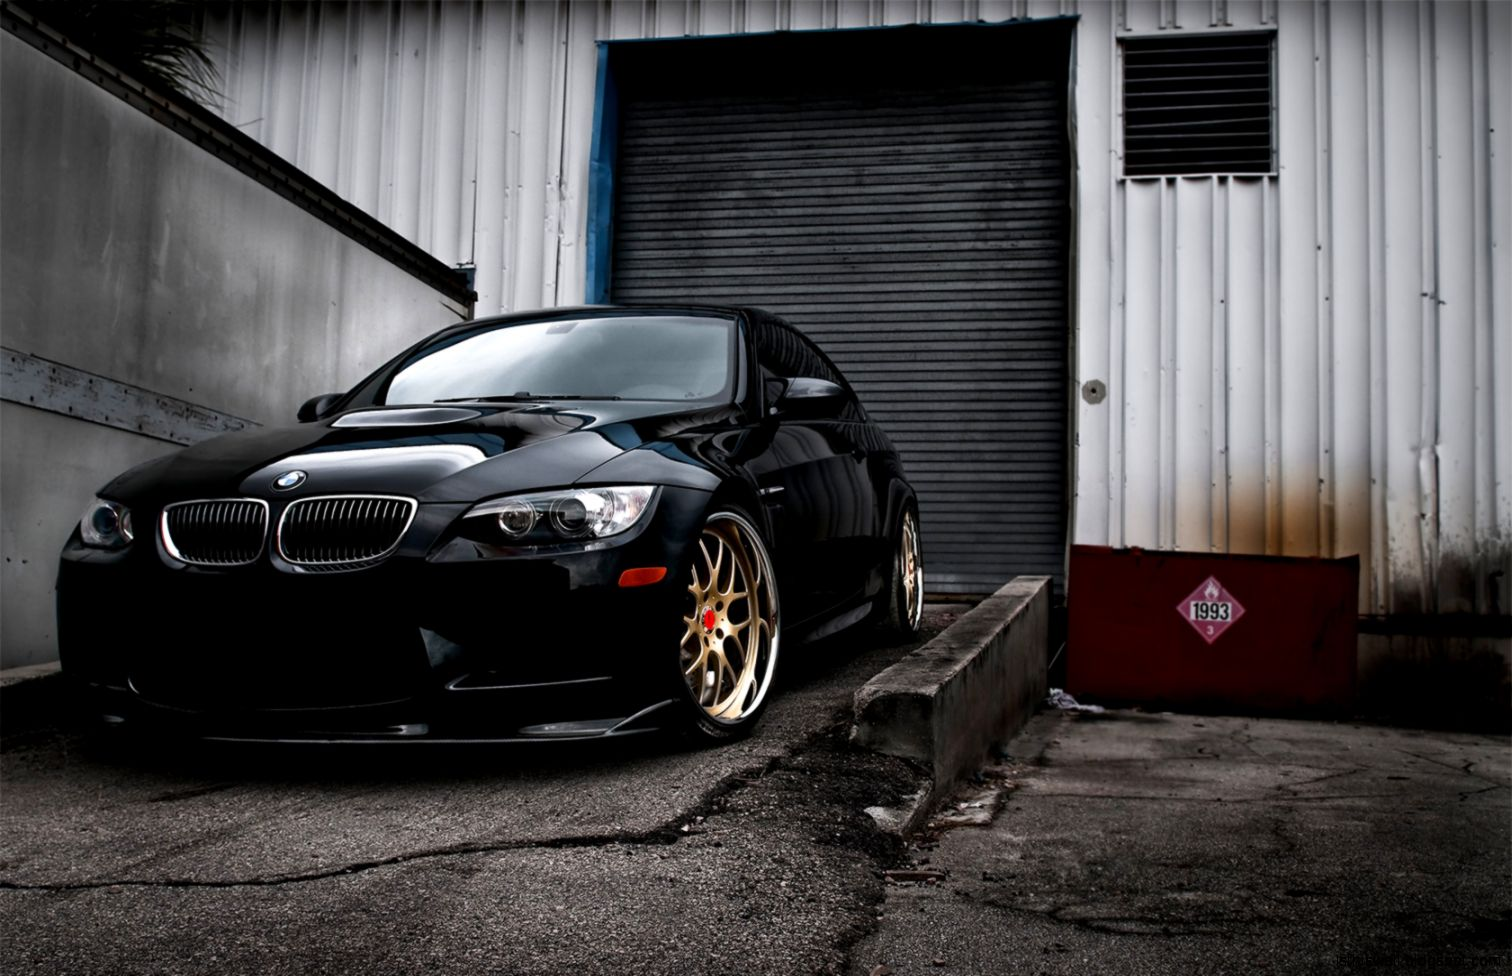 Black Bmw M3 Wallpaper   Speedy Wallpapers   HD Car Wallpaper